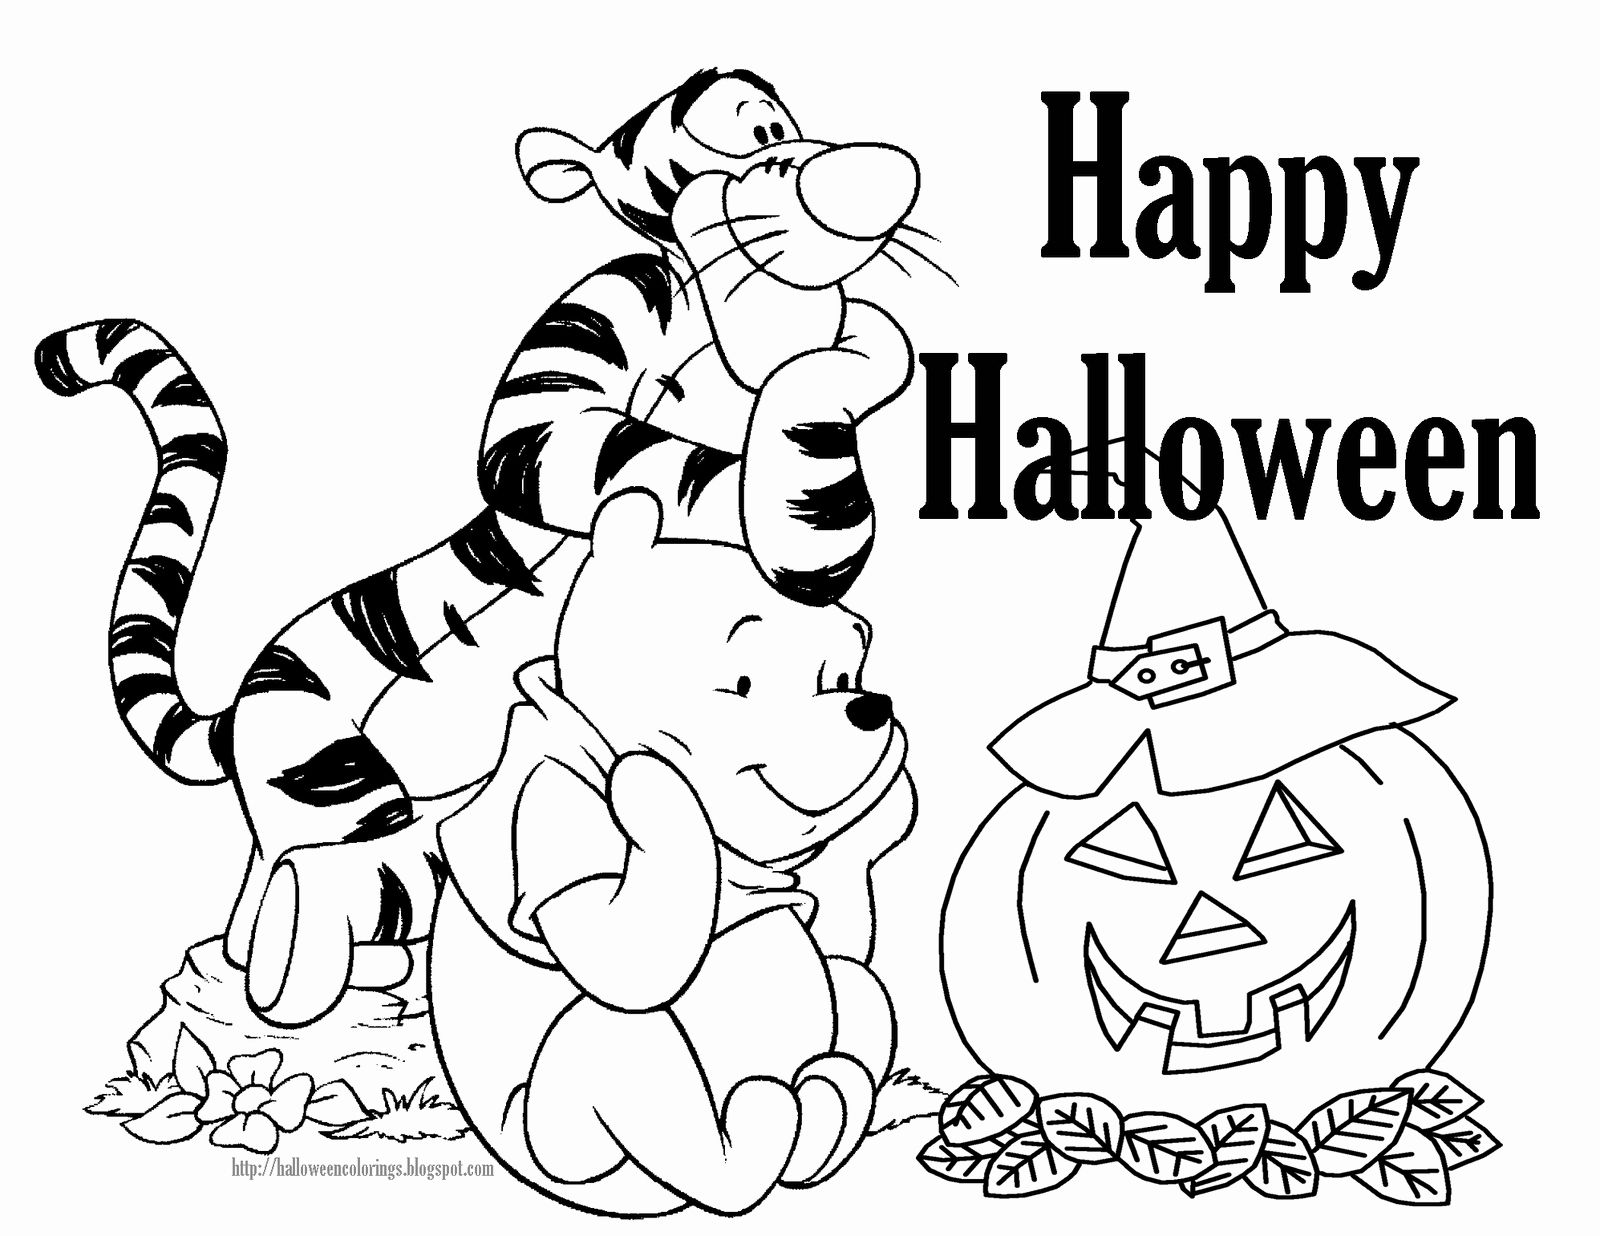 Disney Halloween Coloring Pages Printable New Free Disney Halloween Color Halloween Coloring Pages Halloween Coloring Sheets Halloween Coloring Pages Printable